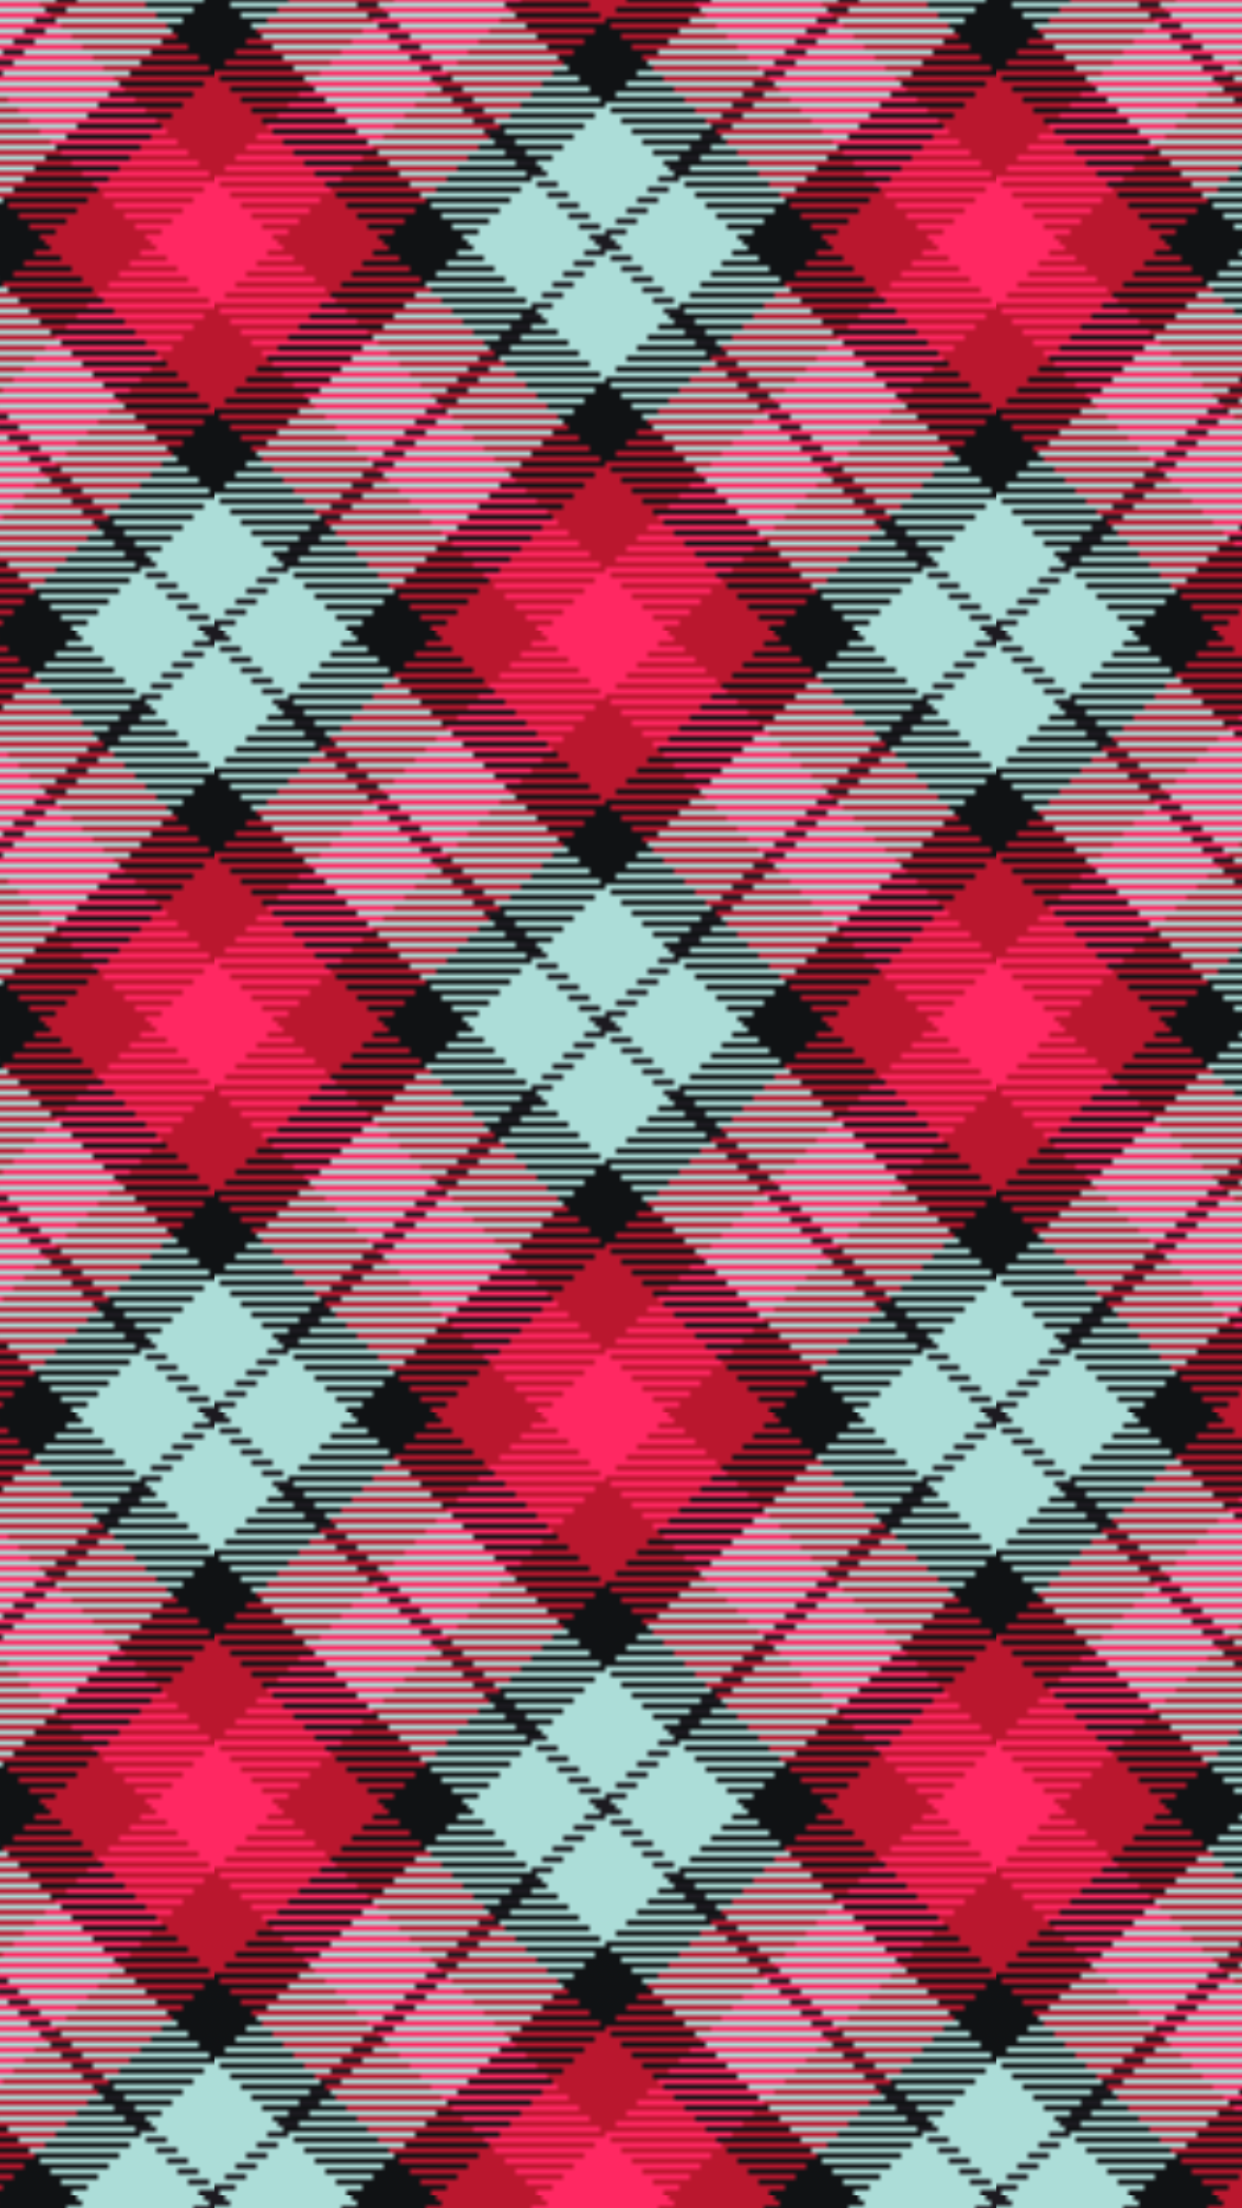 Red and Green Plaid Wallpaper Plaid wallpaper, Cellphone